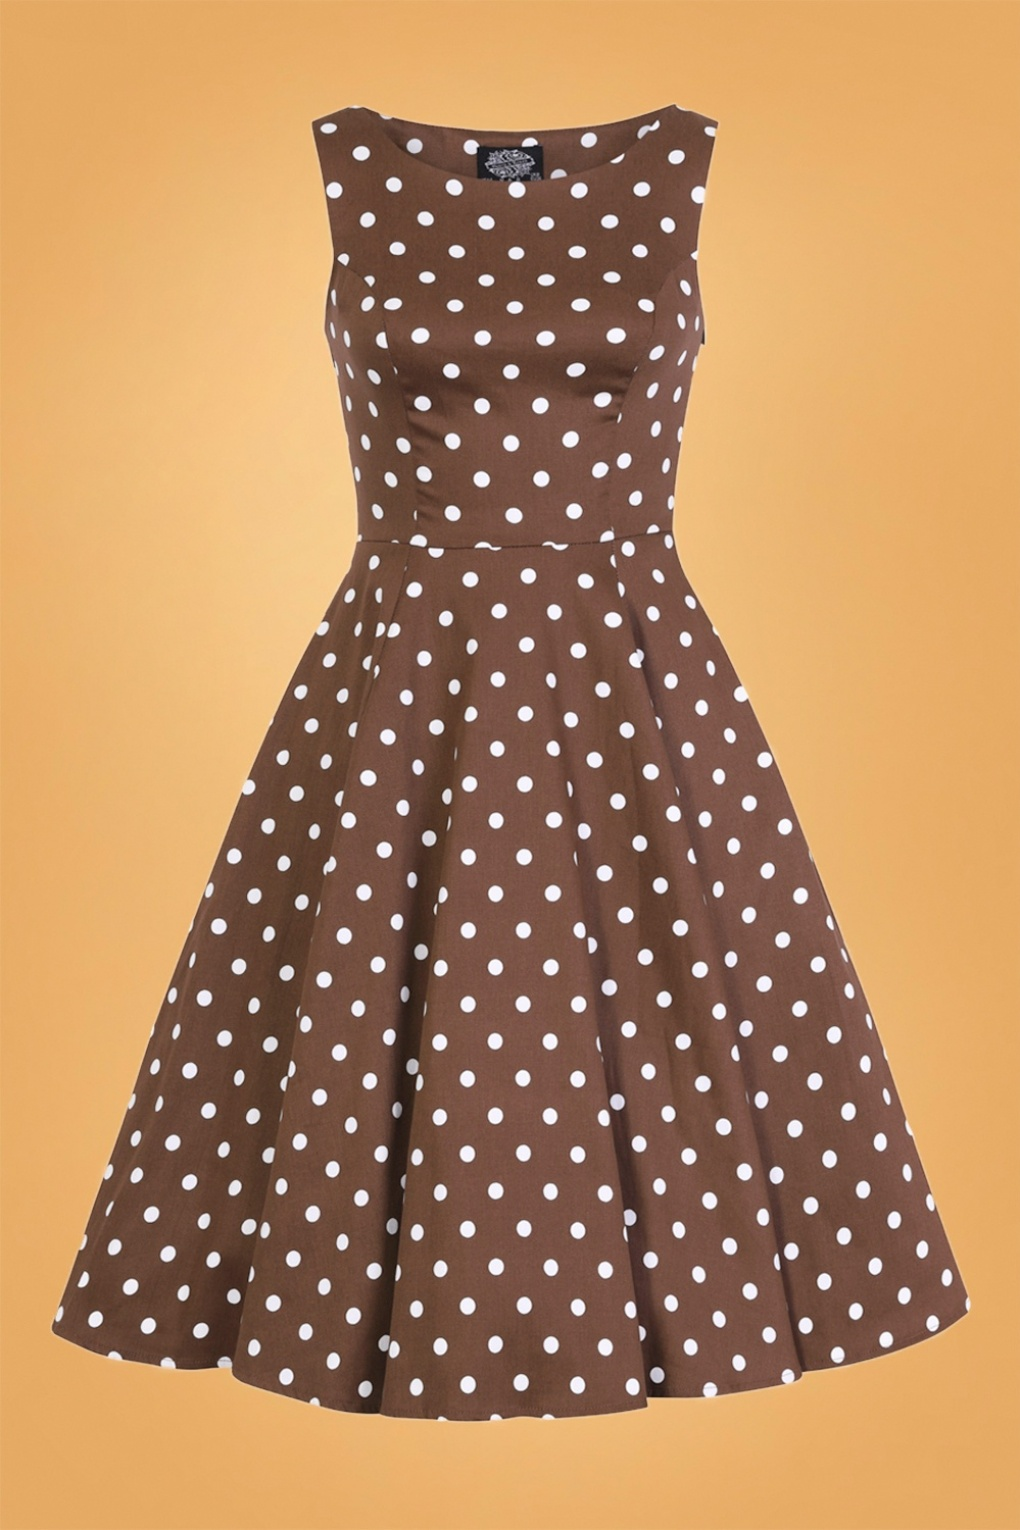 Vintage Polka Dot Dresses – 50s Spotty and Ditsy Prints 50s Cindy Polkadot Swing Dress in Chocolate Brown £41.63 AT vintagedancer.com